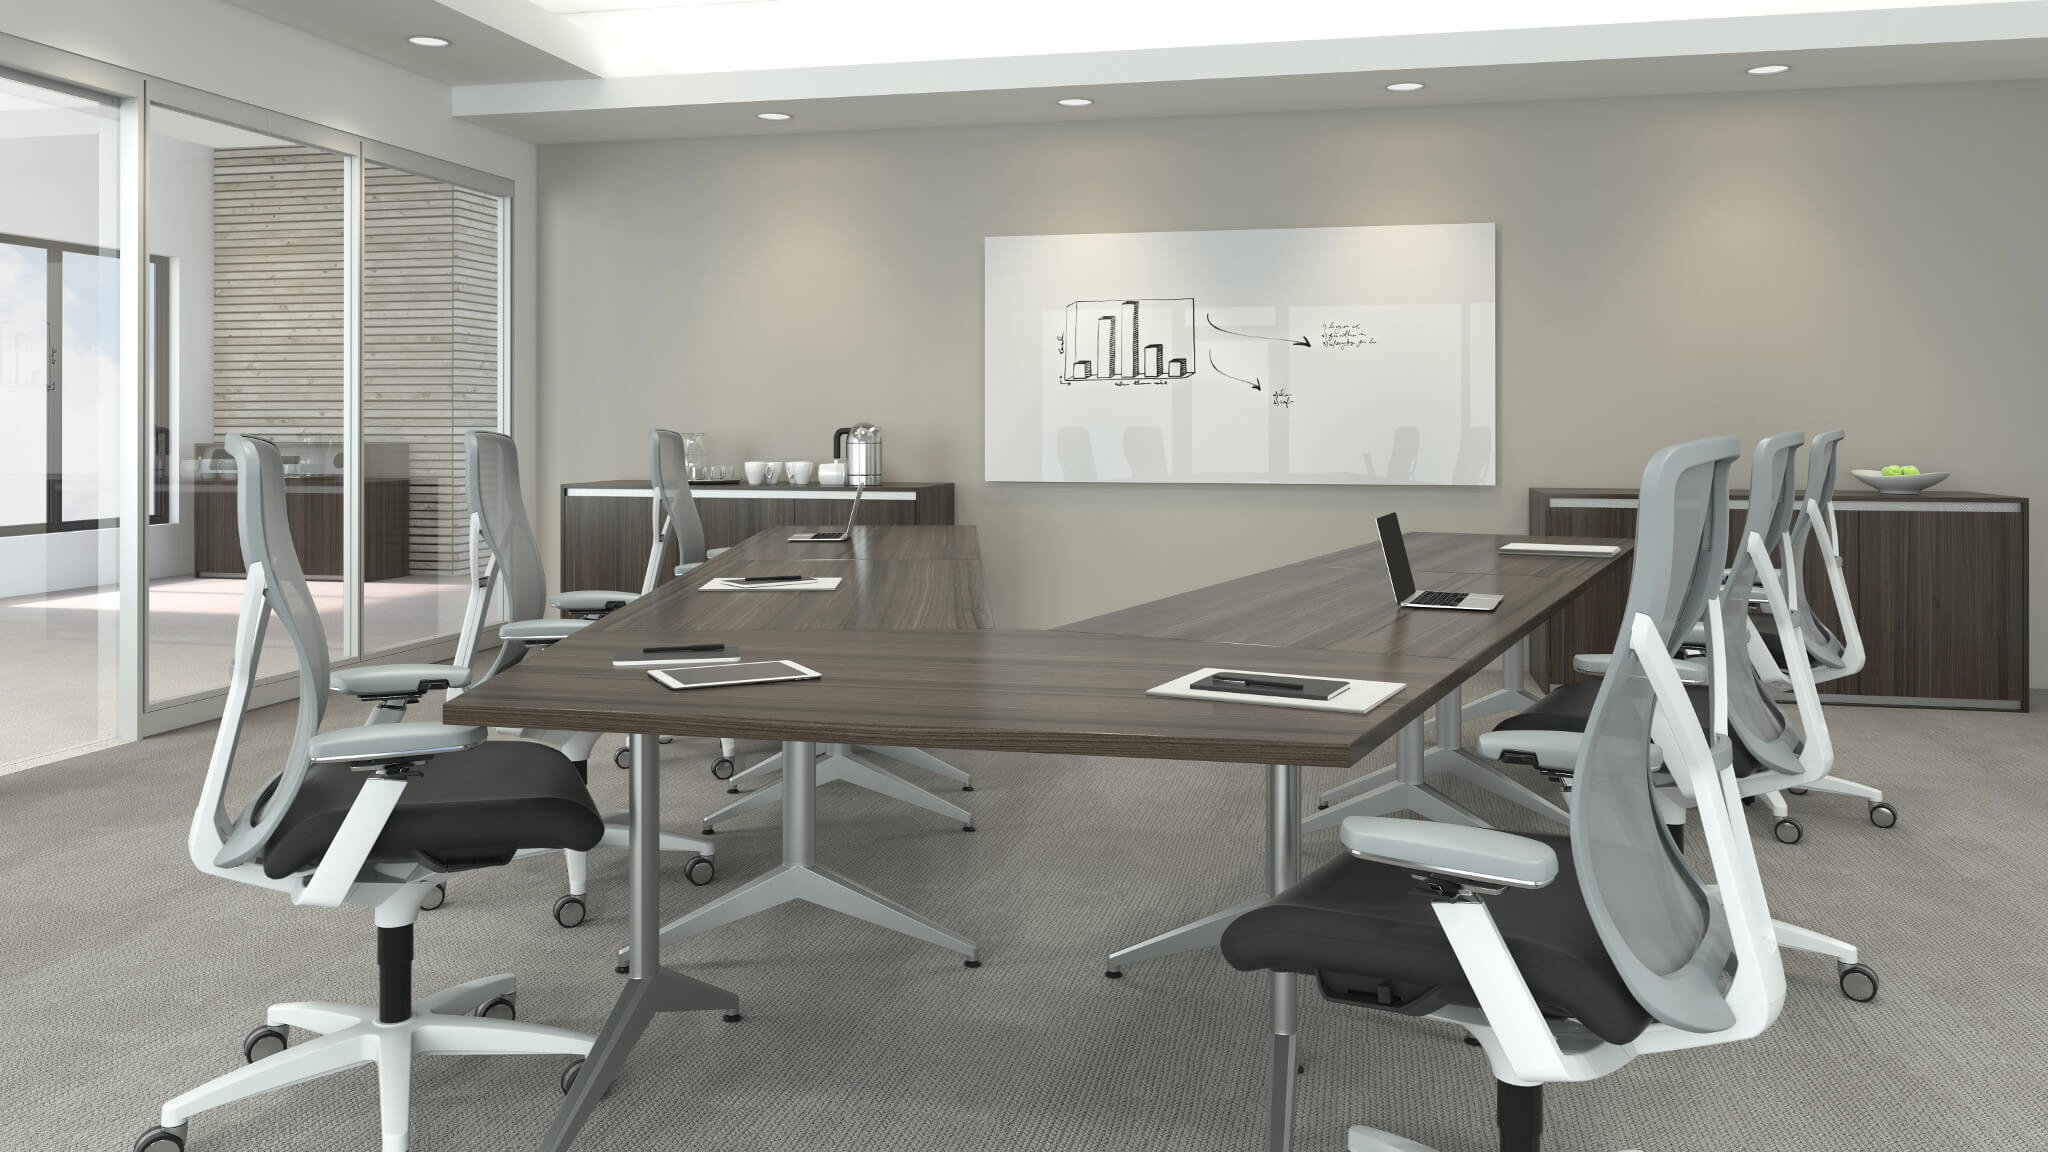 artco bell chairs folding backpack chair meeting spaces all makes office equipment co